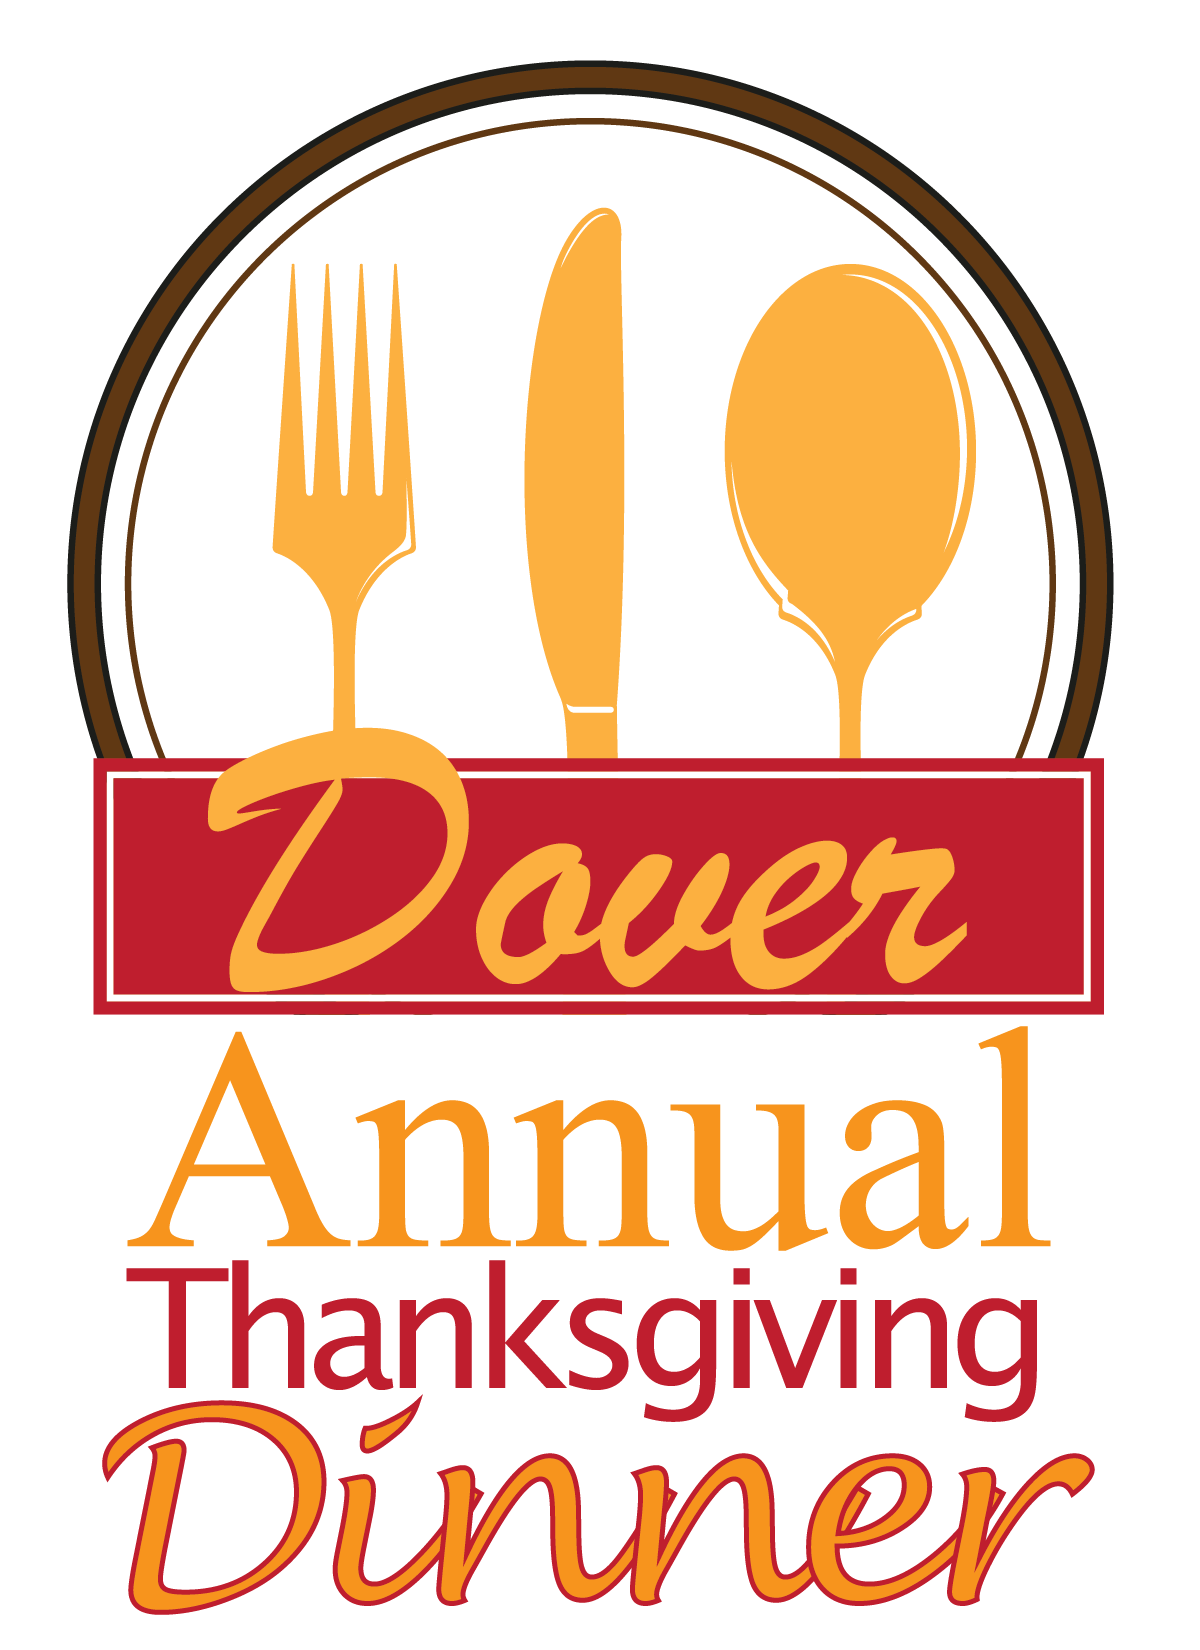 Thanksgiving dinner logo